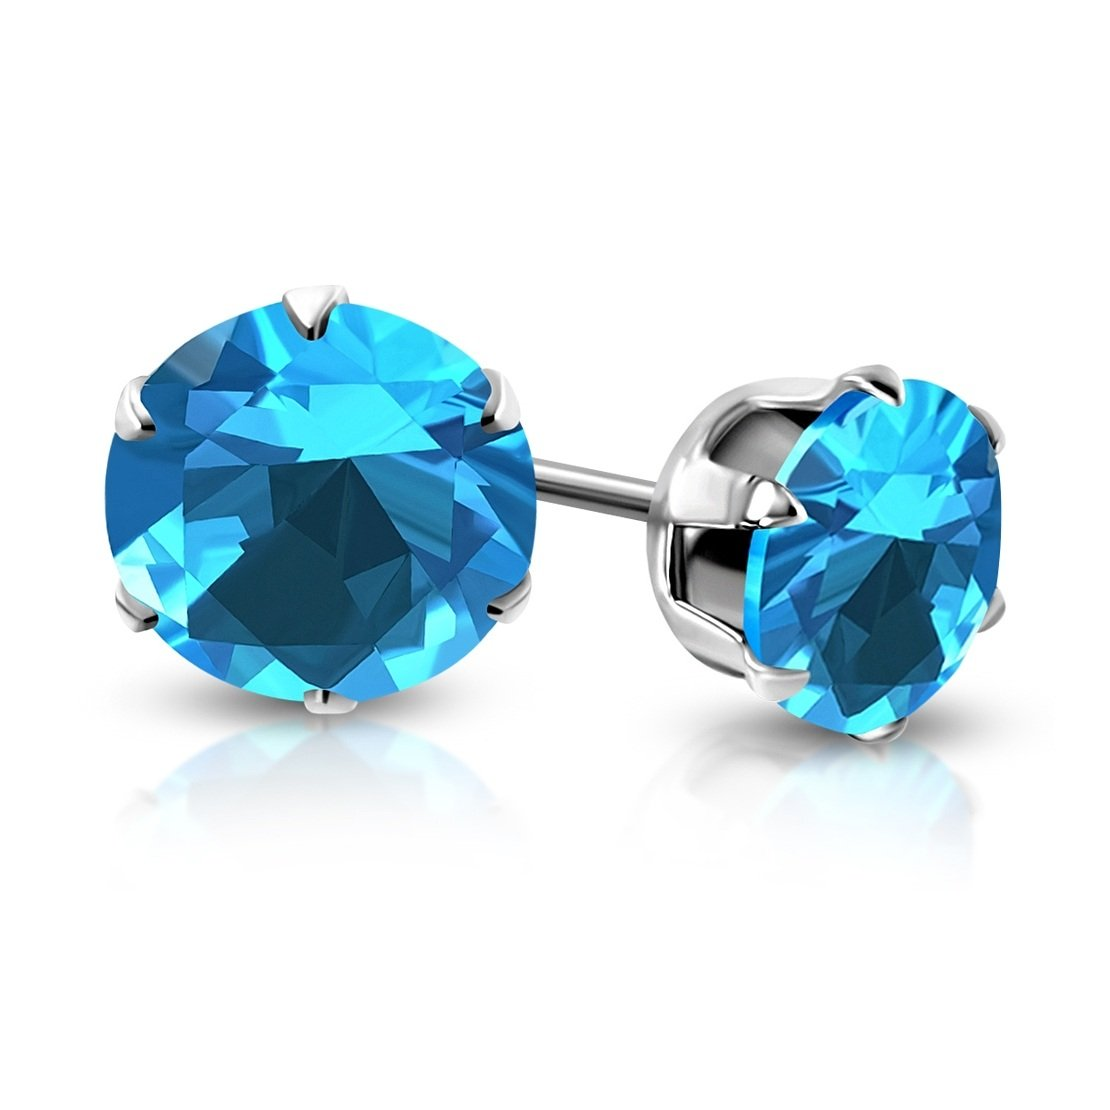 pair Stainless Steel Prong-Set Round Circle Stud Earrings with Sky Blue// AquamarineCZ